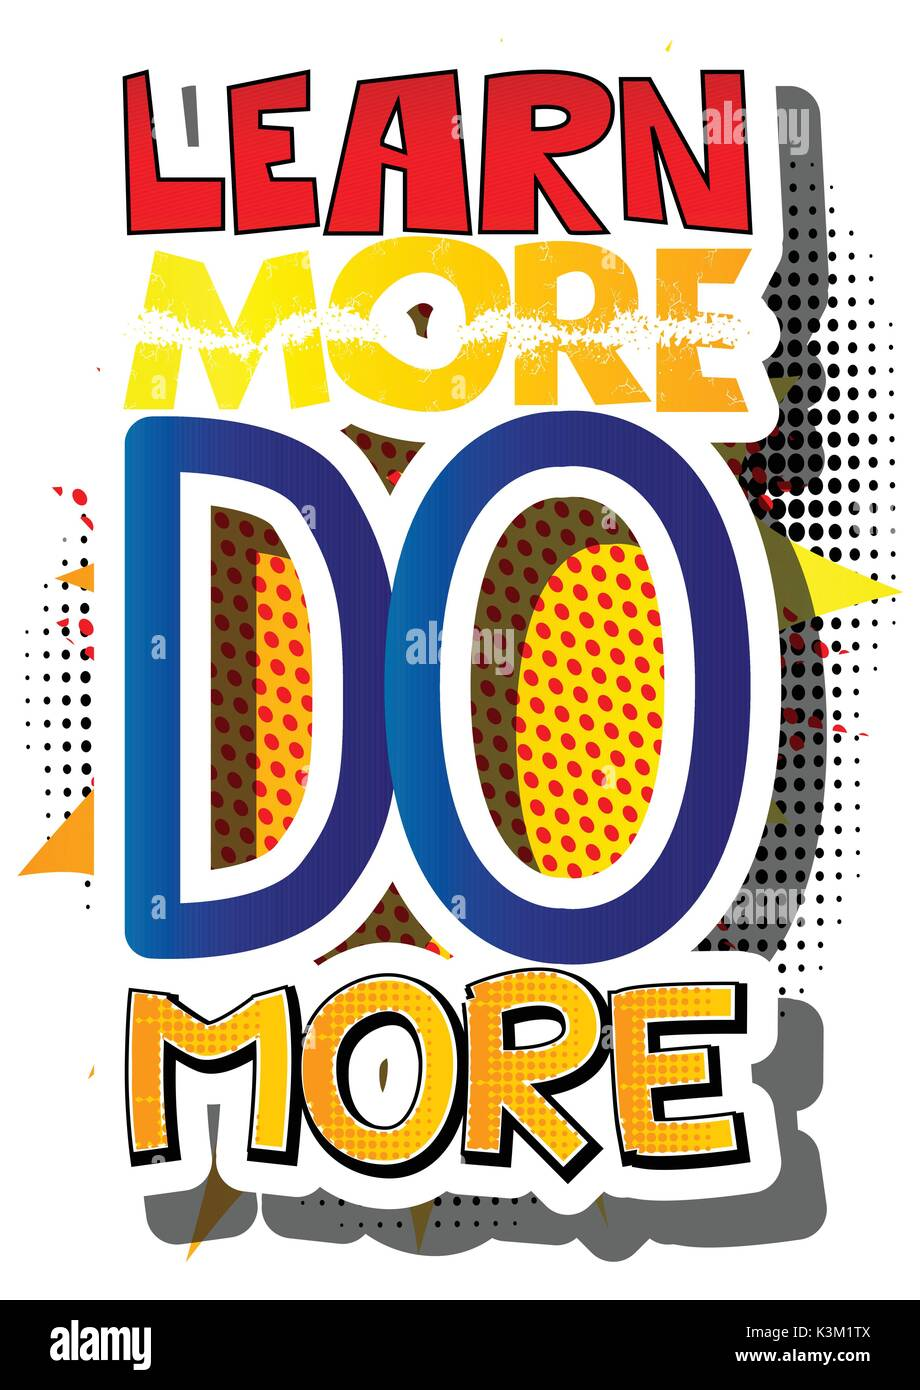 Learn More Do More. Vector illustrated comic book style design. Inspirational, motivational quote. - Stock Vector